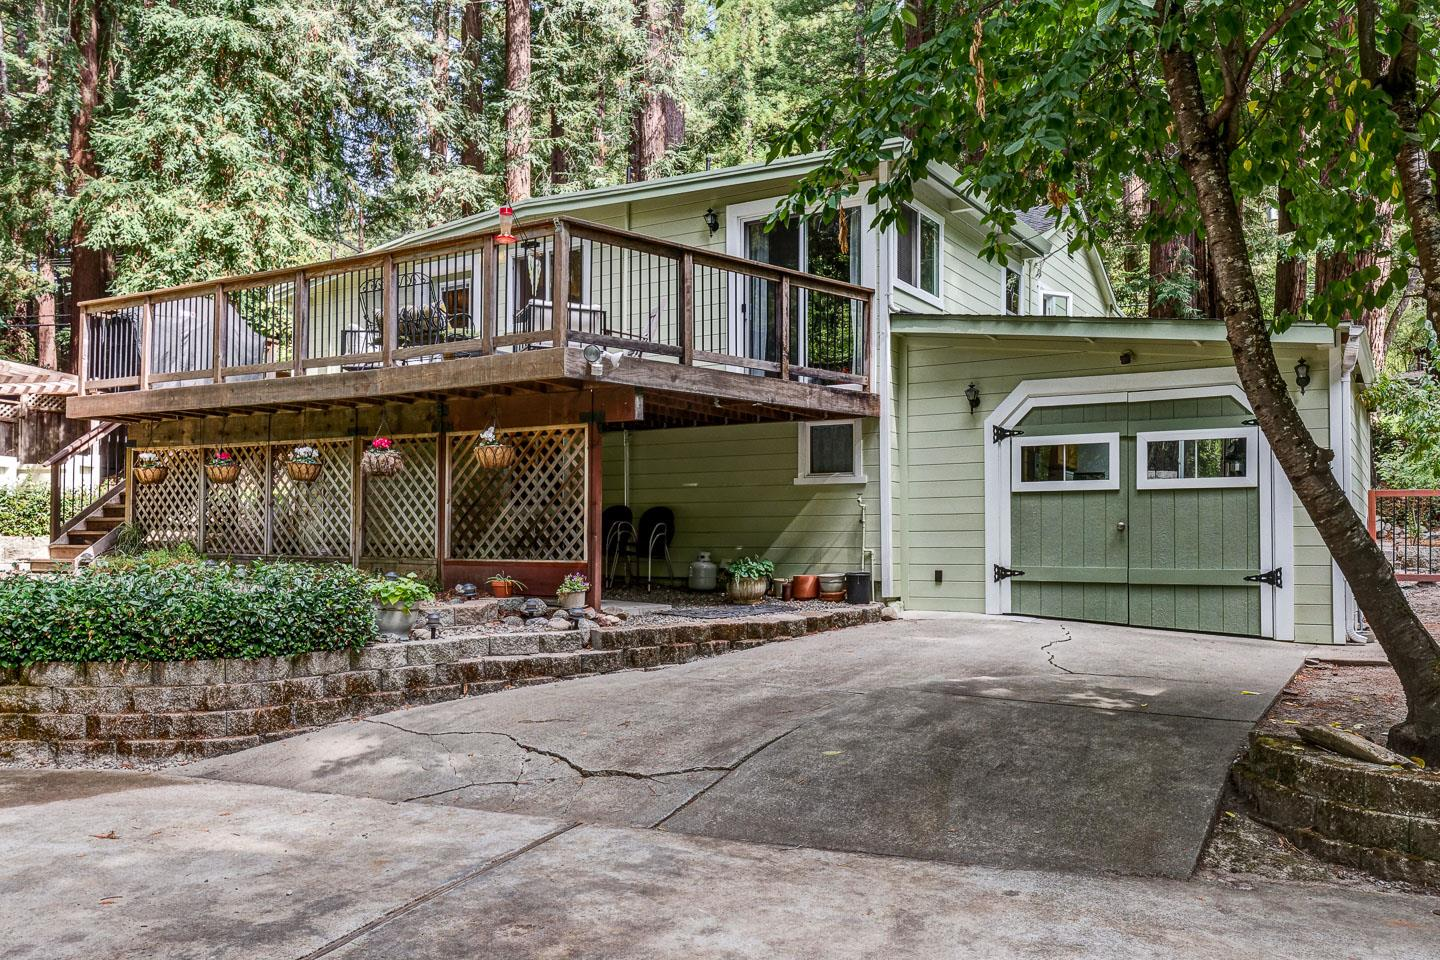 Open House Sunday Nov 10 1-4 pm. Mystical & Magical setting among the tall redwoods!  This home is located in a very desirable neighborhood of Boulder Creek.  The home is ready to move in with new high end bamboo flooring and updated kitchen and bath.  Great open concept floor plan make the home feel much bigger than it is.  The master suite has a newly designed walk in closet.  Guest room next to master opens onto the large back deck and a 3rd guest room/office which is small but functional.  Stone fireplace, recessed lighting, dual pane windows and updated plumbing leaves little to do for a new owner.  Private entrance to the laundry and an additional space located off of garage could be perfect for hobby or guest room.  The yard is perfect for entertaining with outdoor kitchen, spa, fire pits and lawn area.  With 10,240 sf of usable property its ideal for nature lovers.  Plenty of off street parking for up to 6 cars and RV.